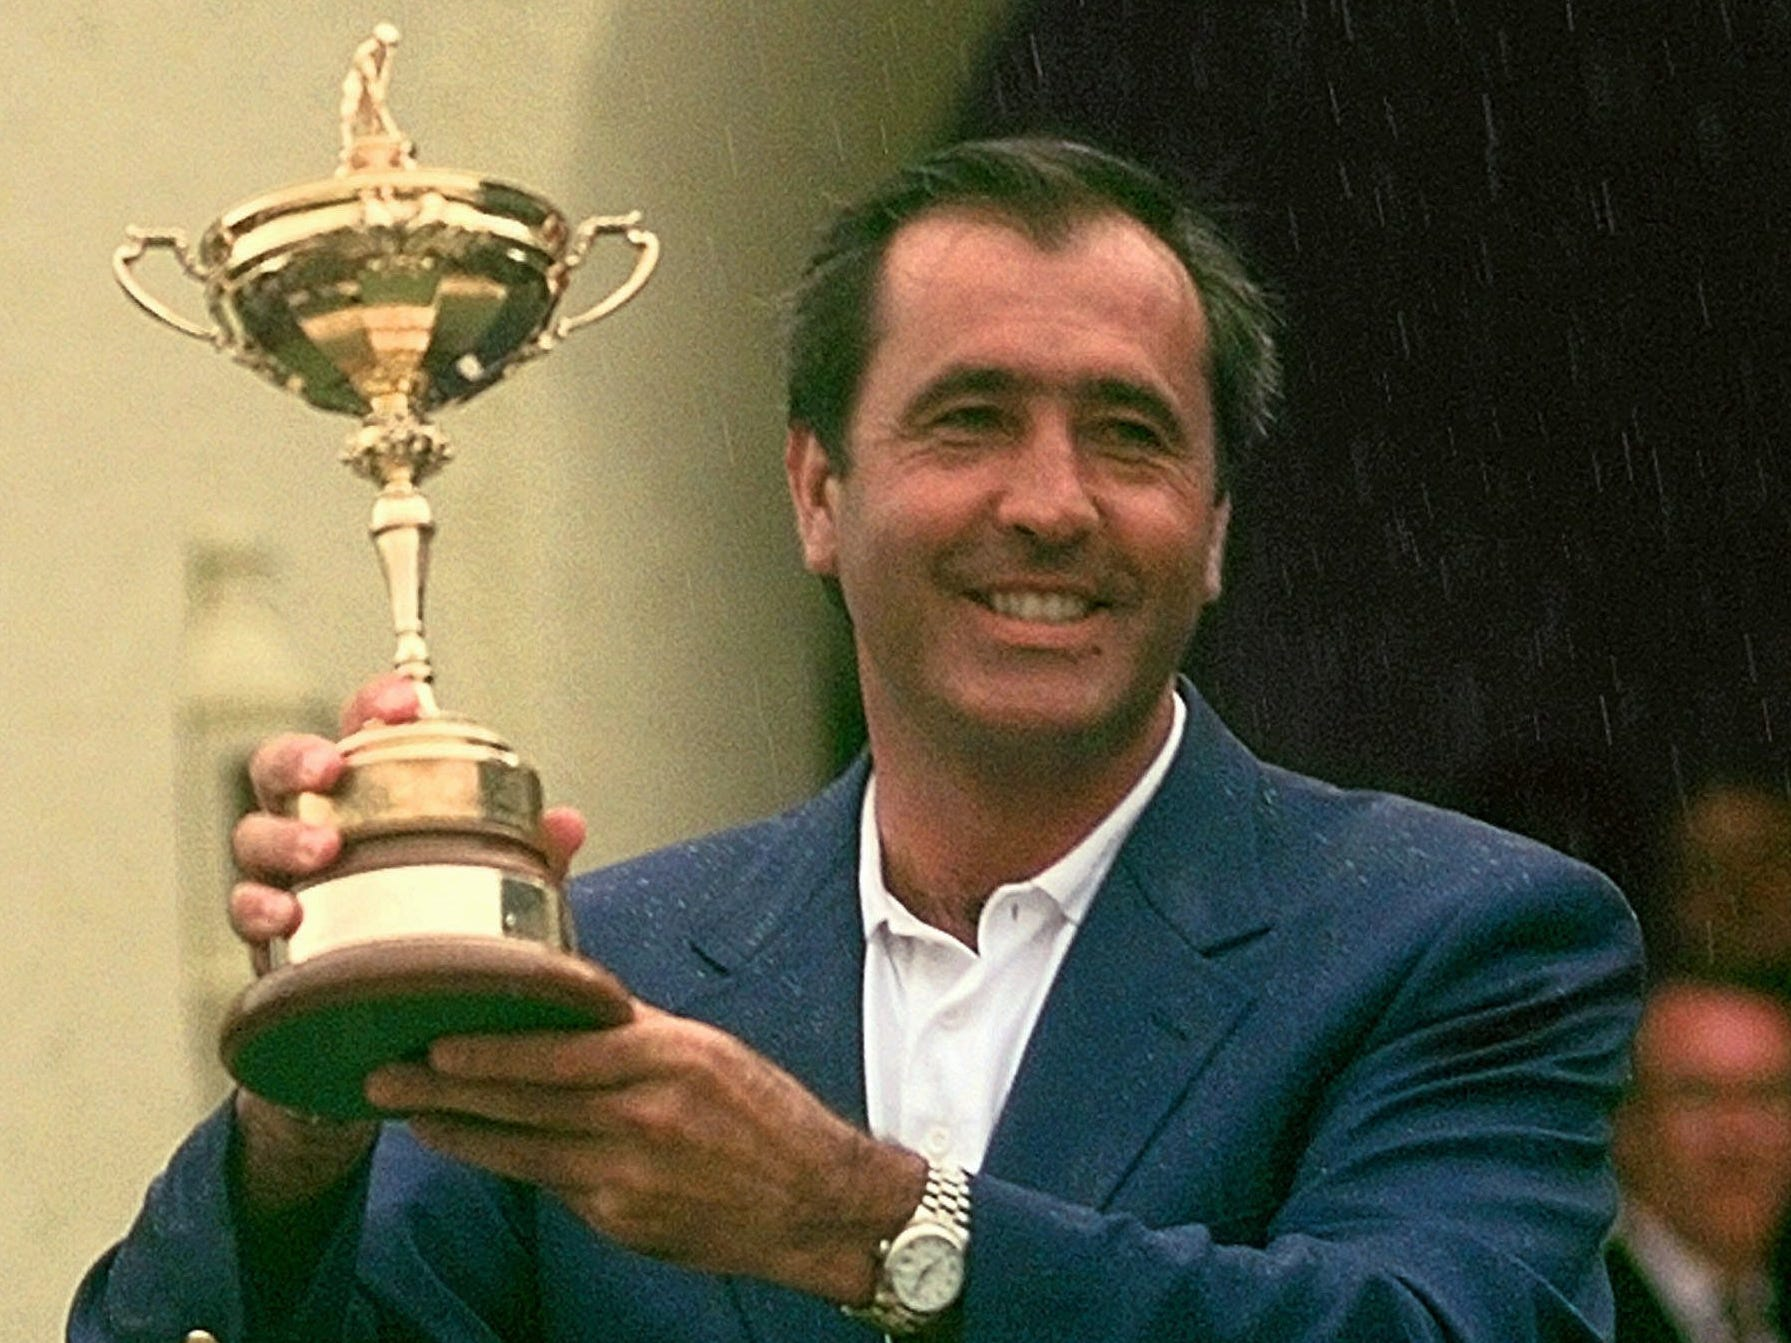 Team Europe, 1997: European Ryder Cup team captain Seve Ballesteros holds the trophy in the rain after Europe beat the United States 14.5-13.5.